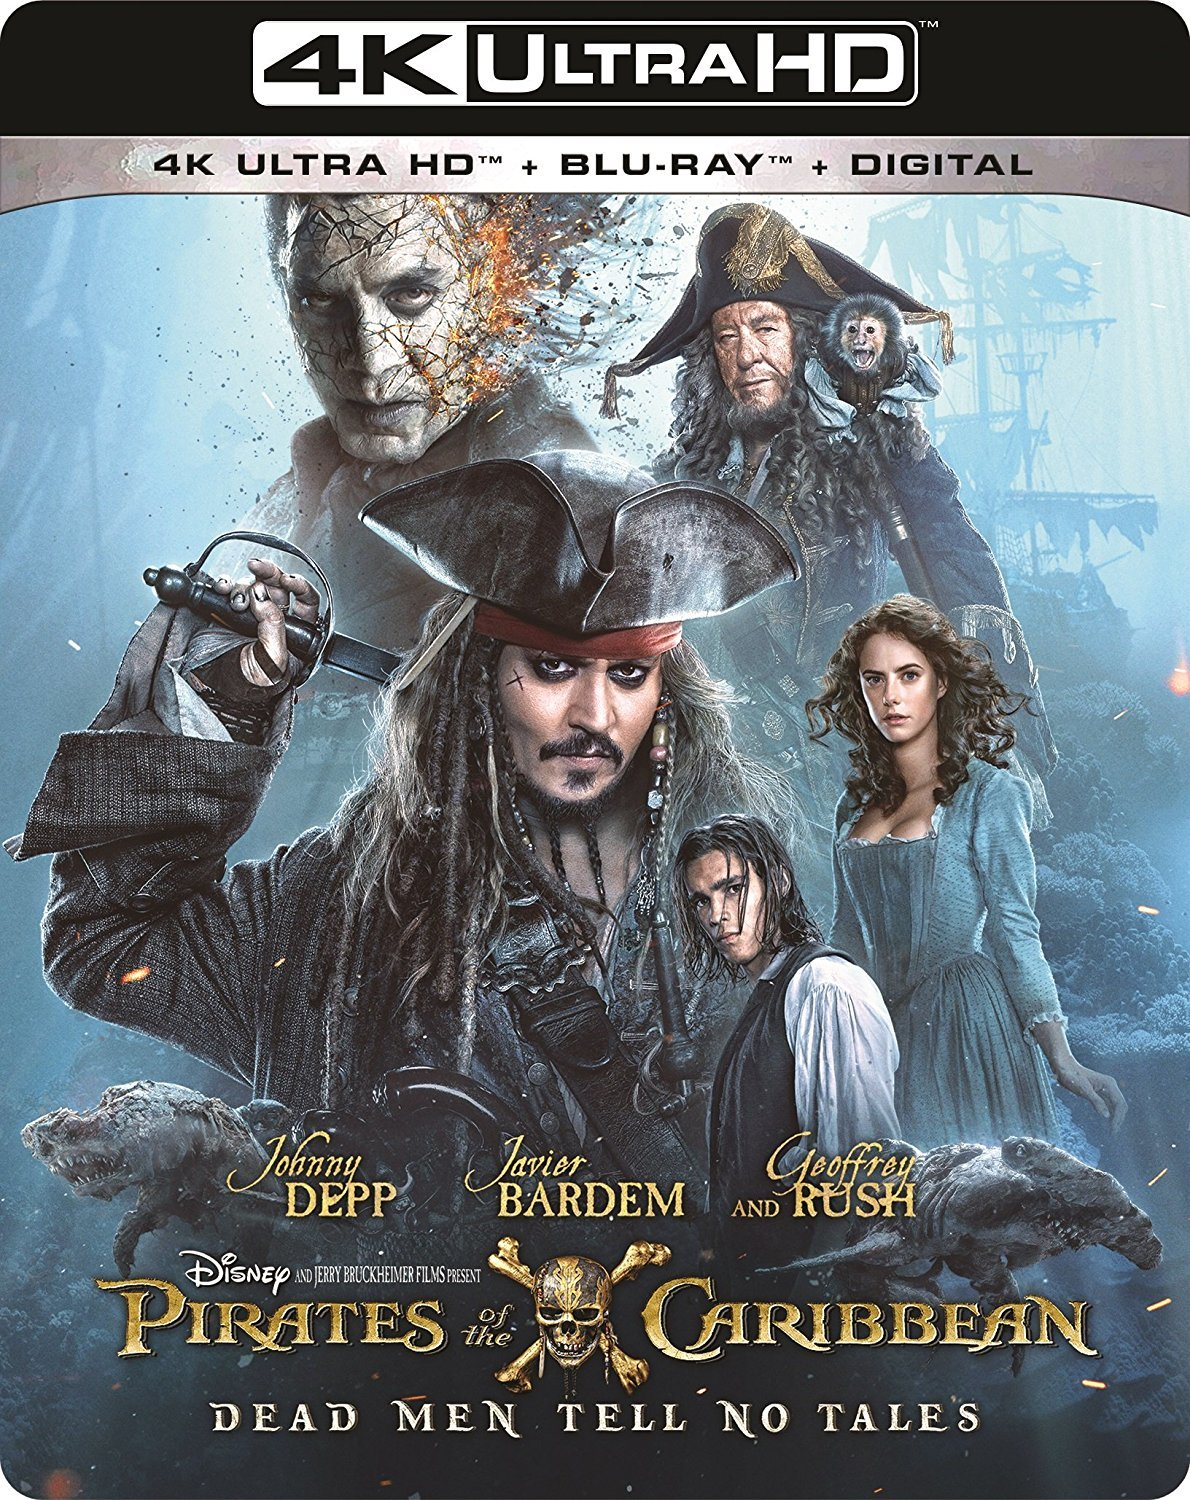 Pirates of the Caribbean: Dead Men Tell No Tales 4K (2017) Ultra HD Blu-ray